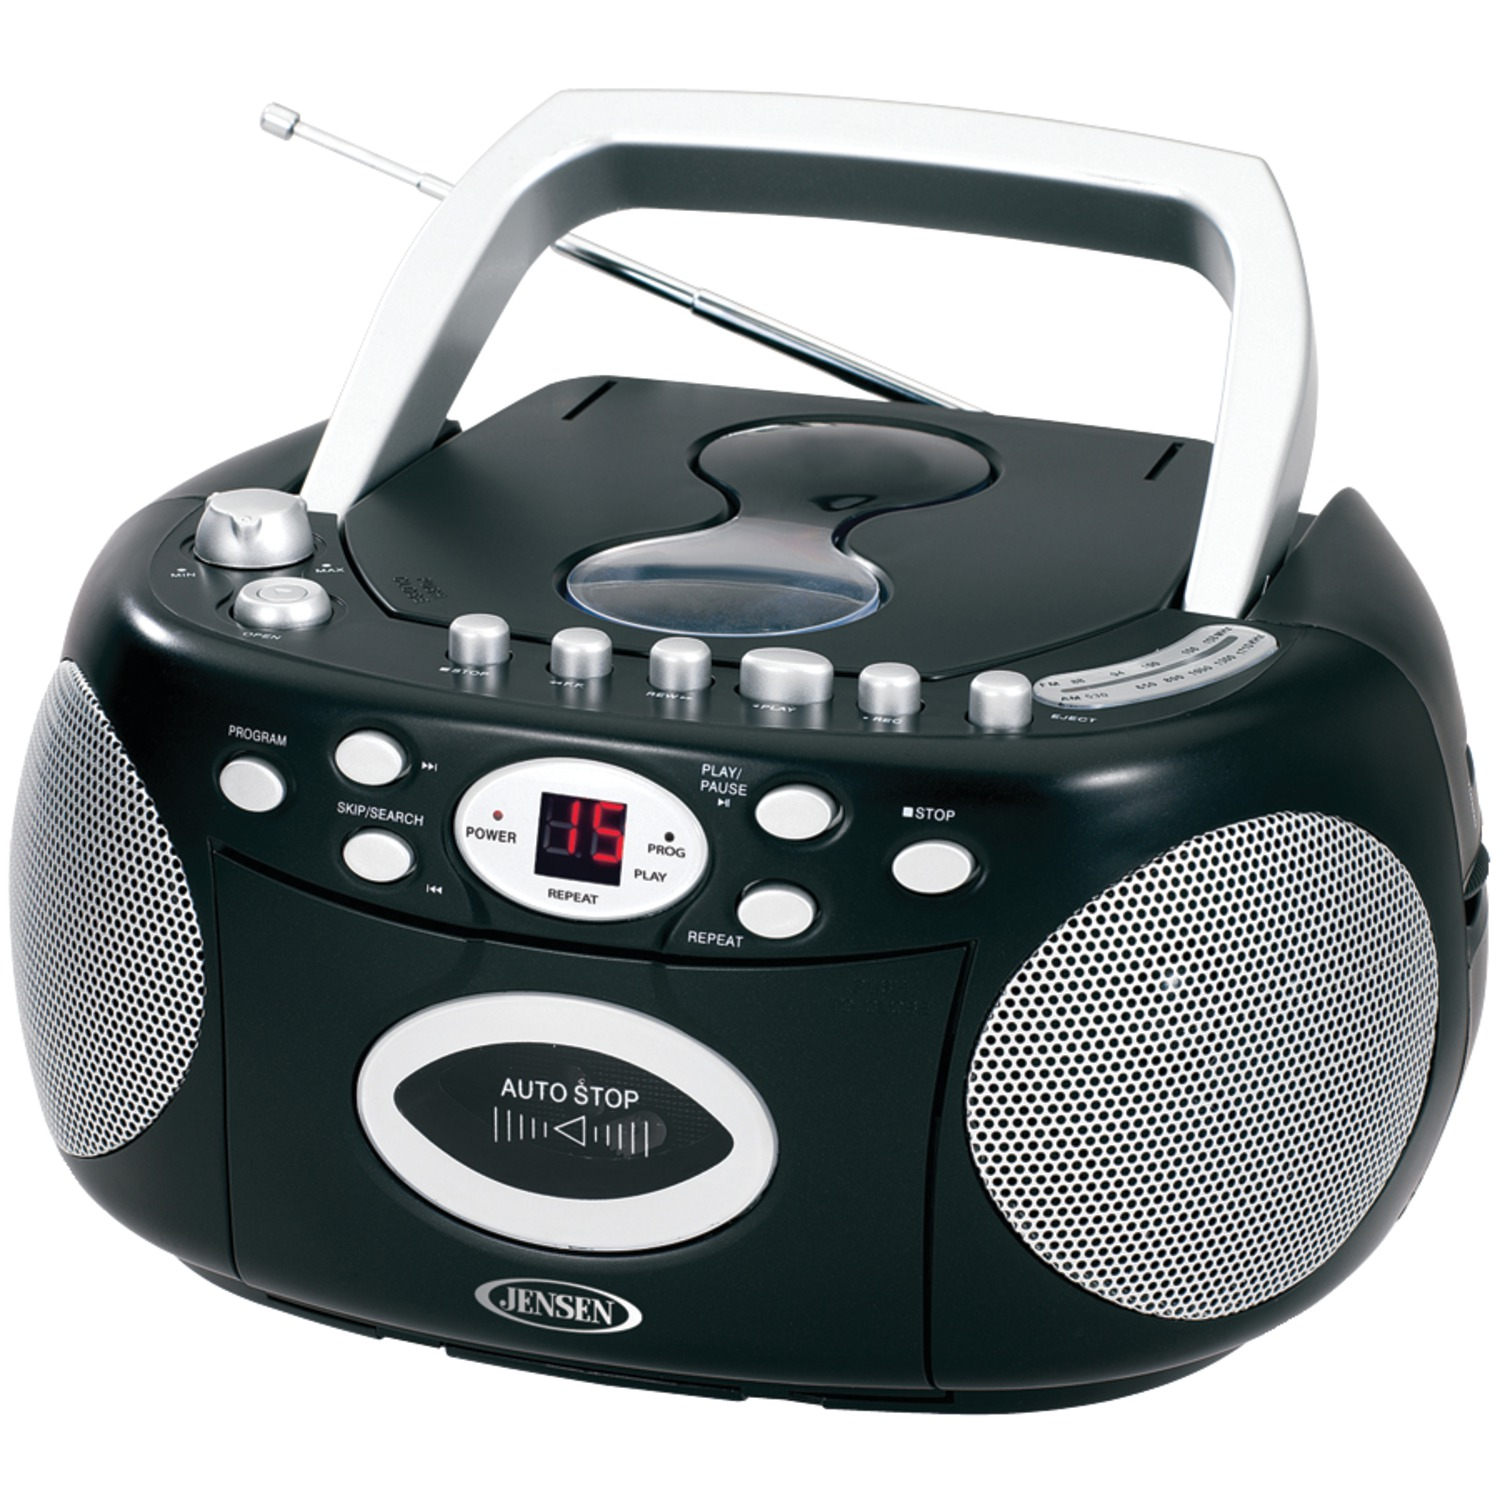 jensen cd 540 r refurbished portable stereo cd player. Black Bedroom Furniture Sets. Home Design Ideas